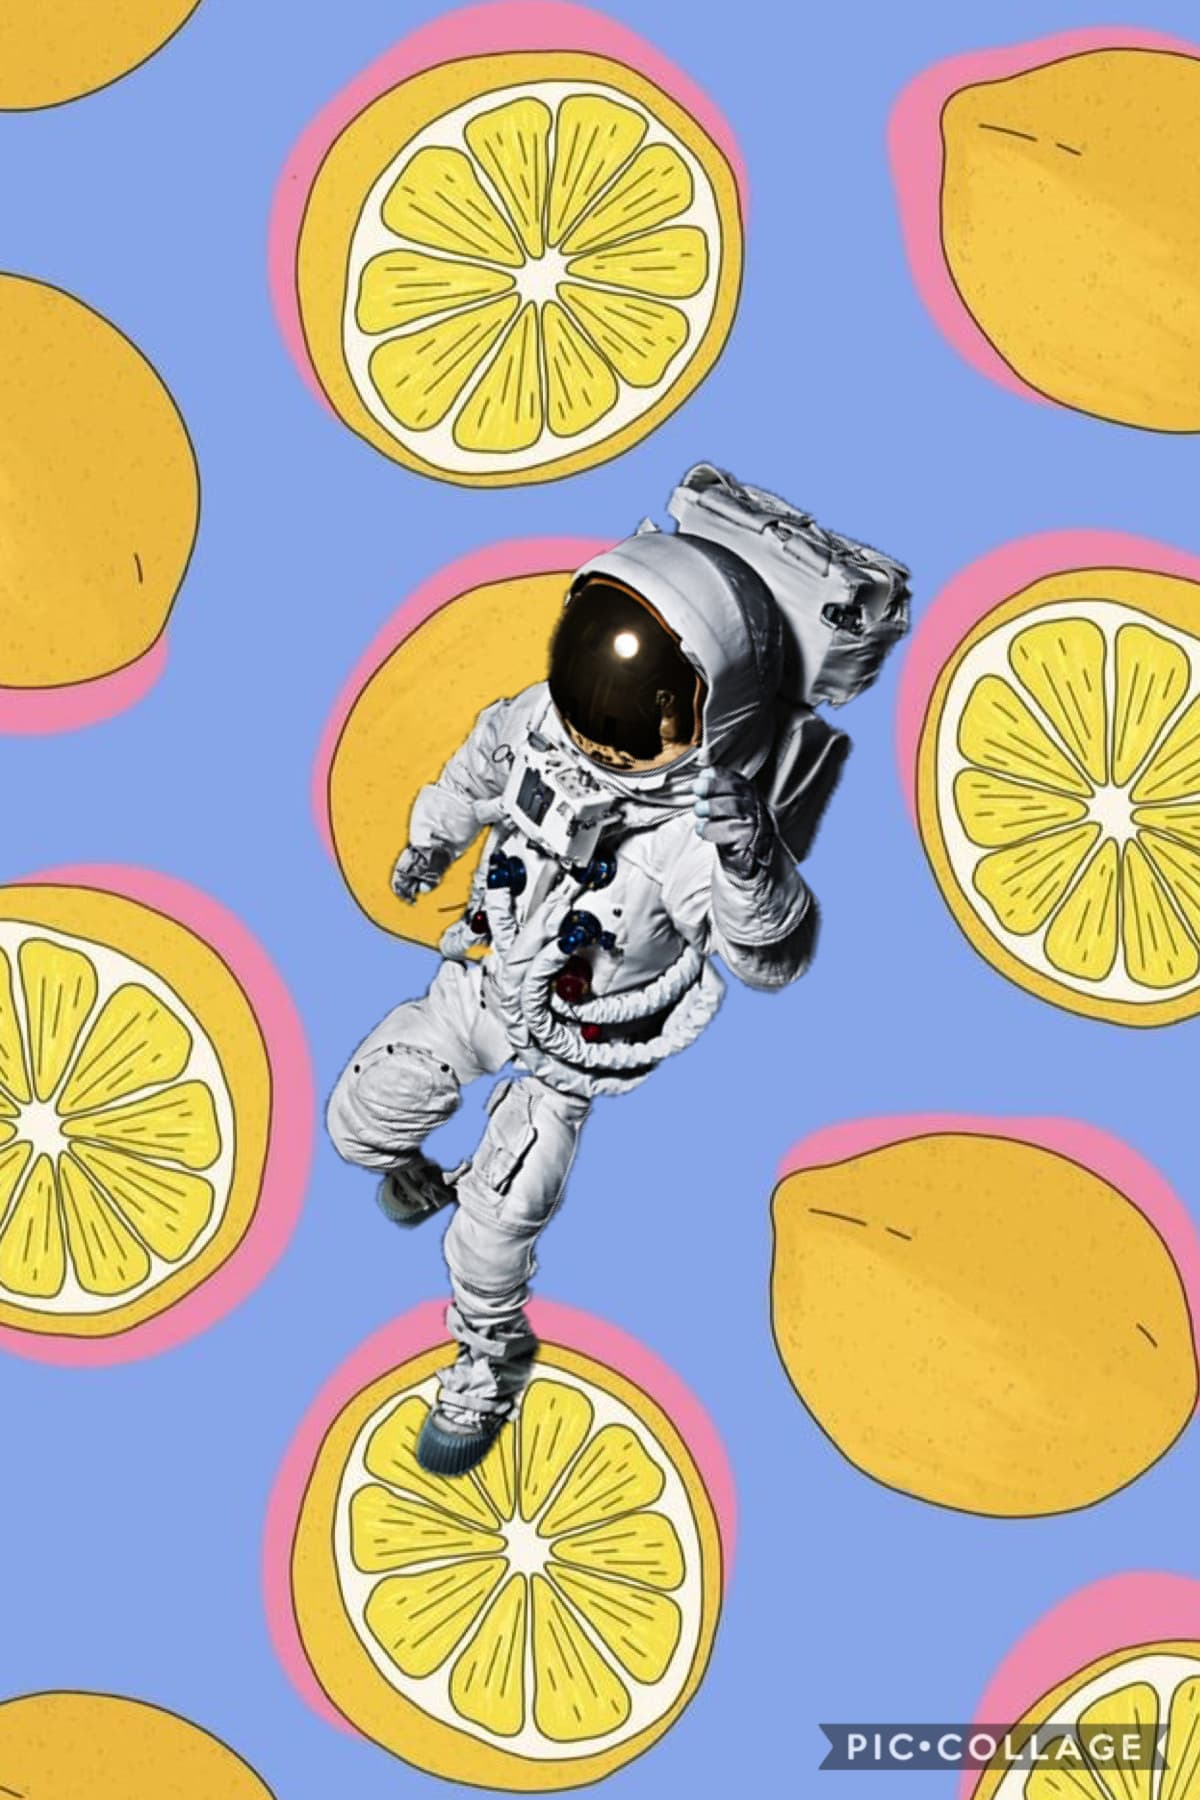 When life gives you lemons, make an astronaut